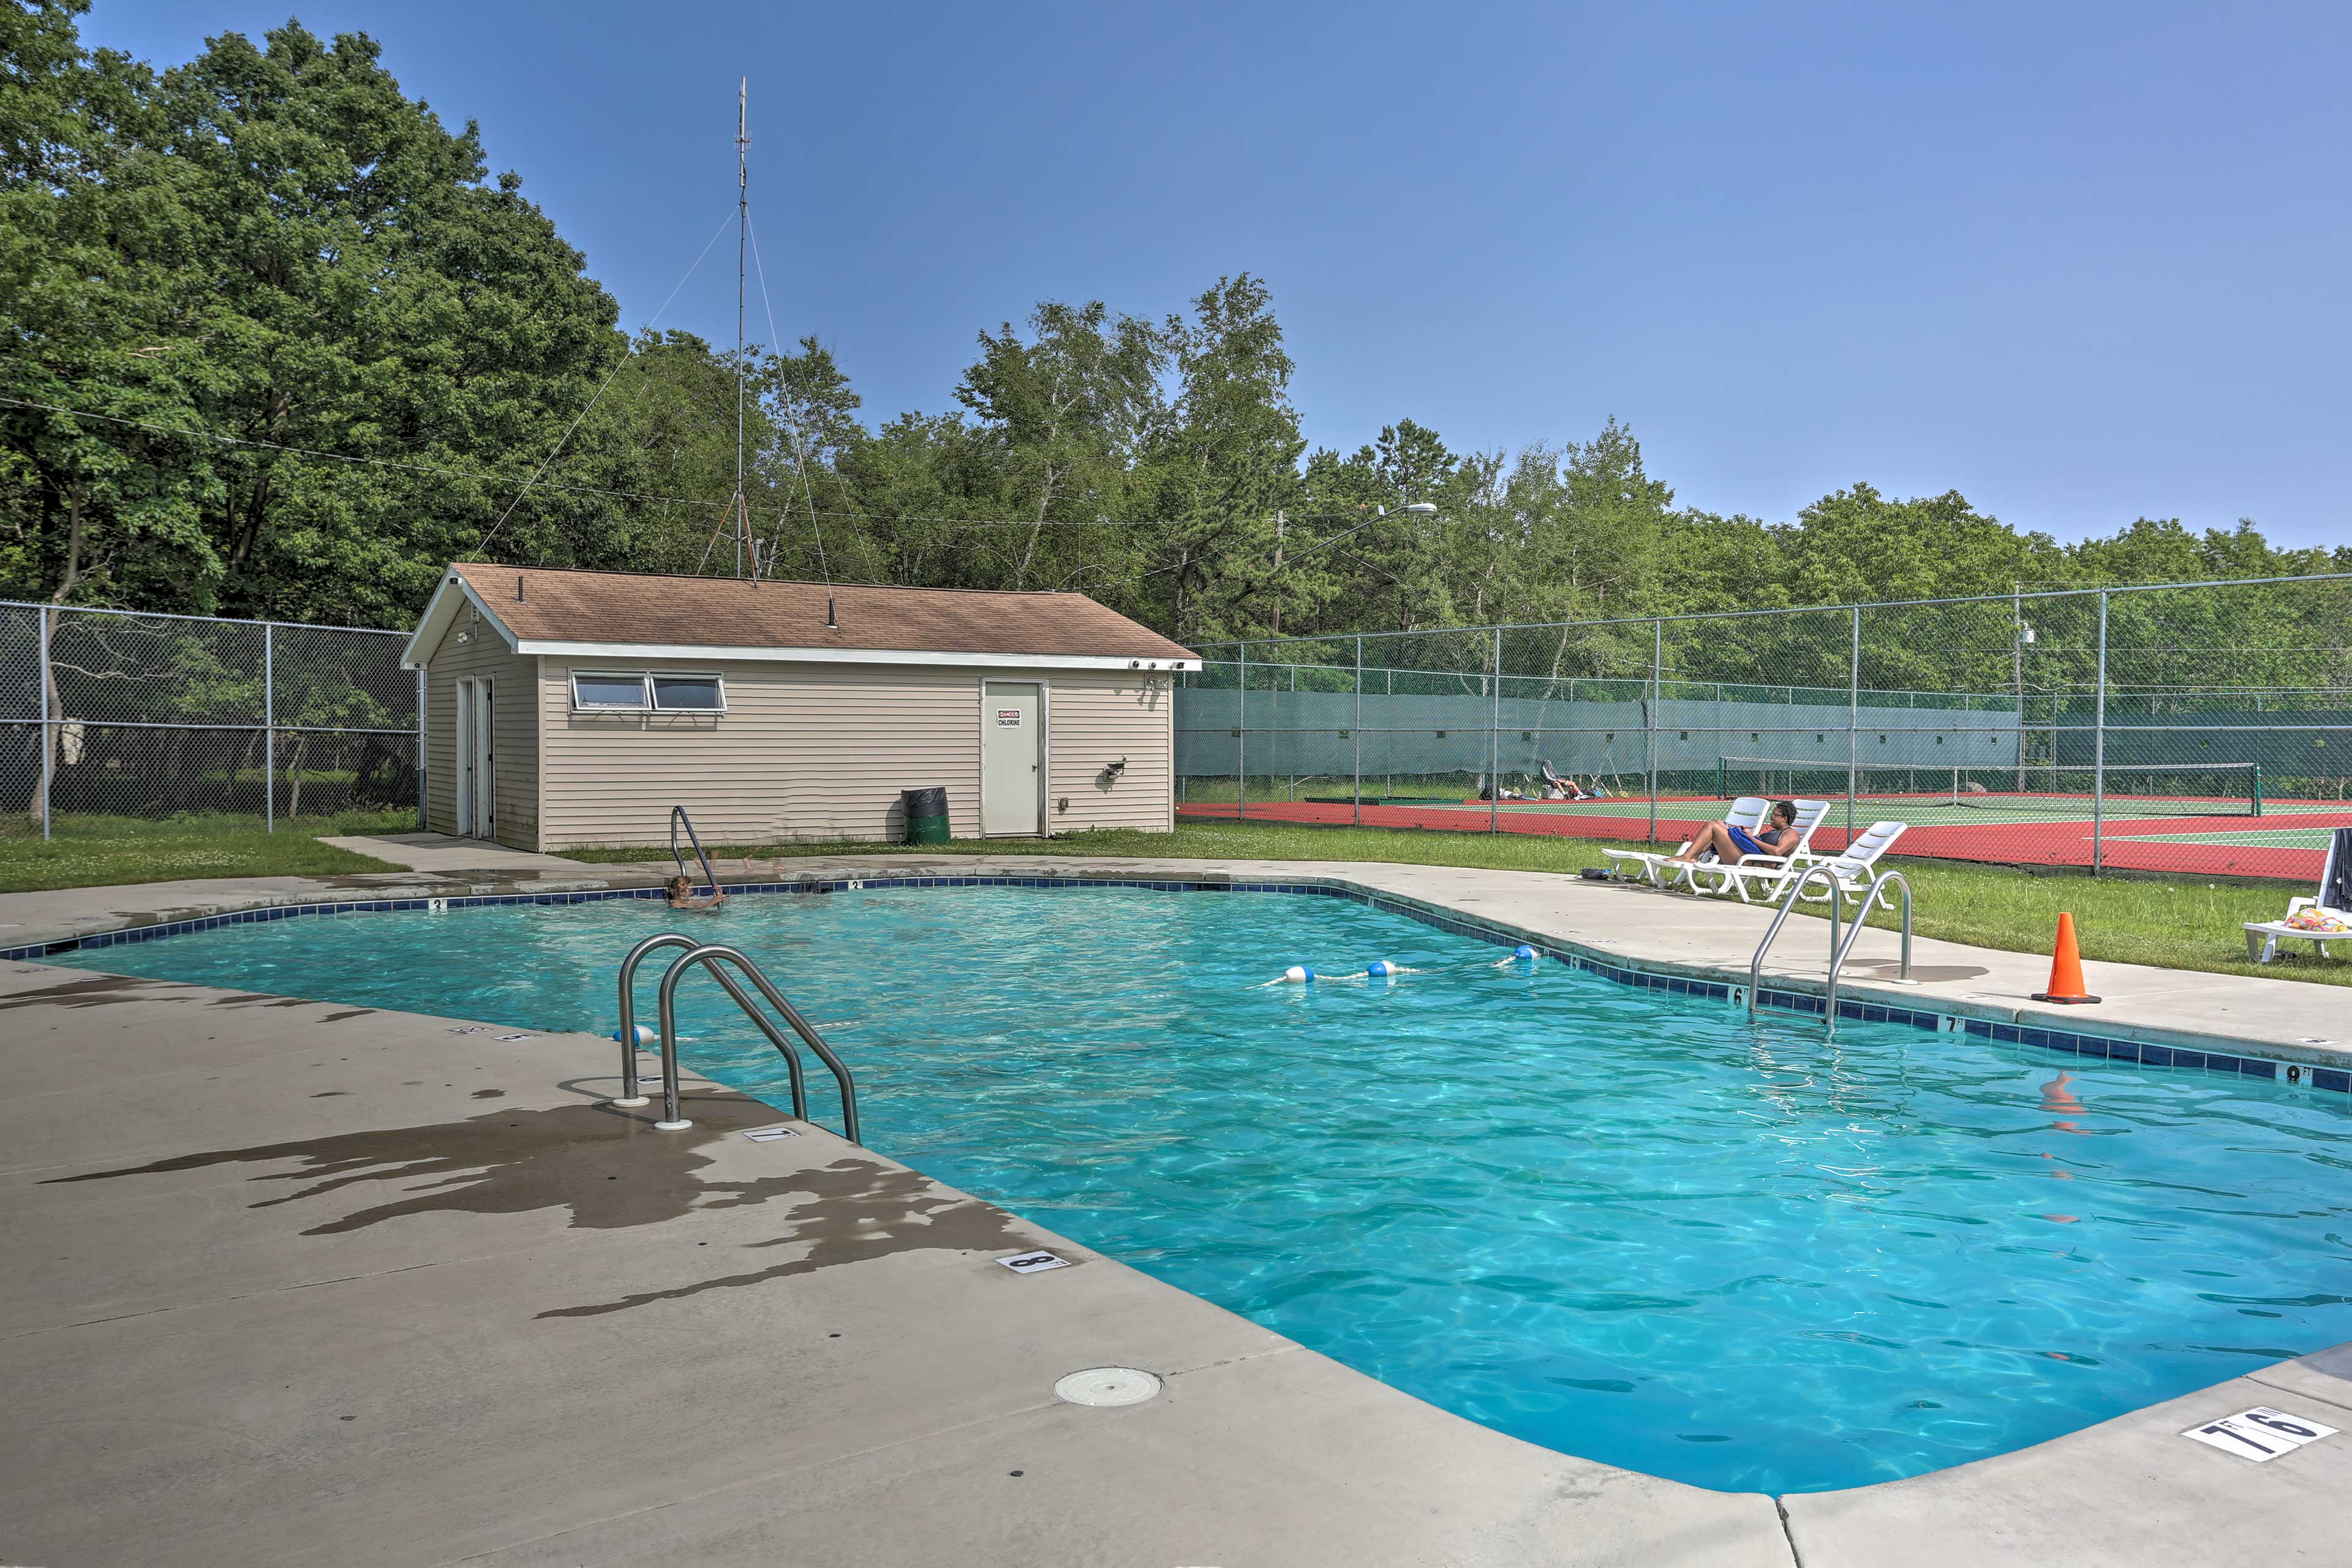 Who's up for a visit to the community pool?